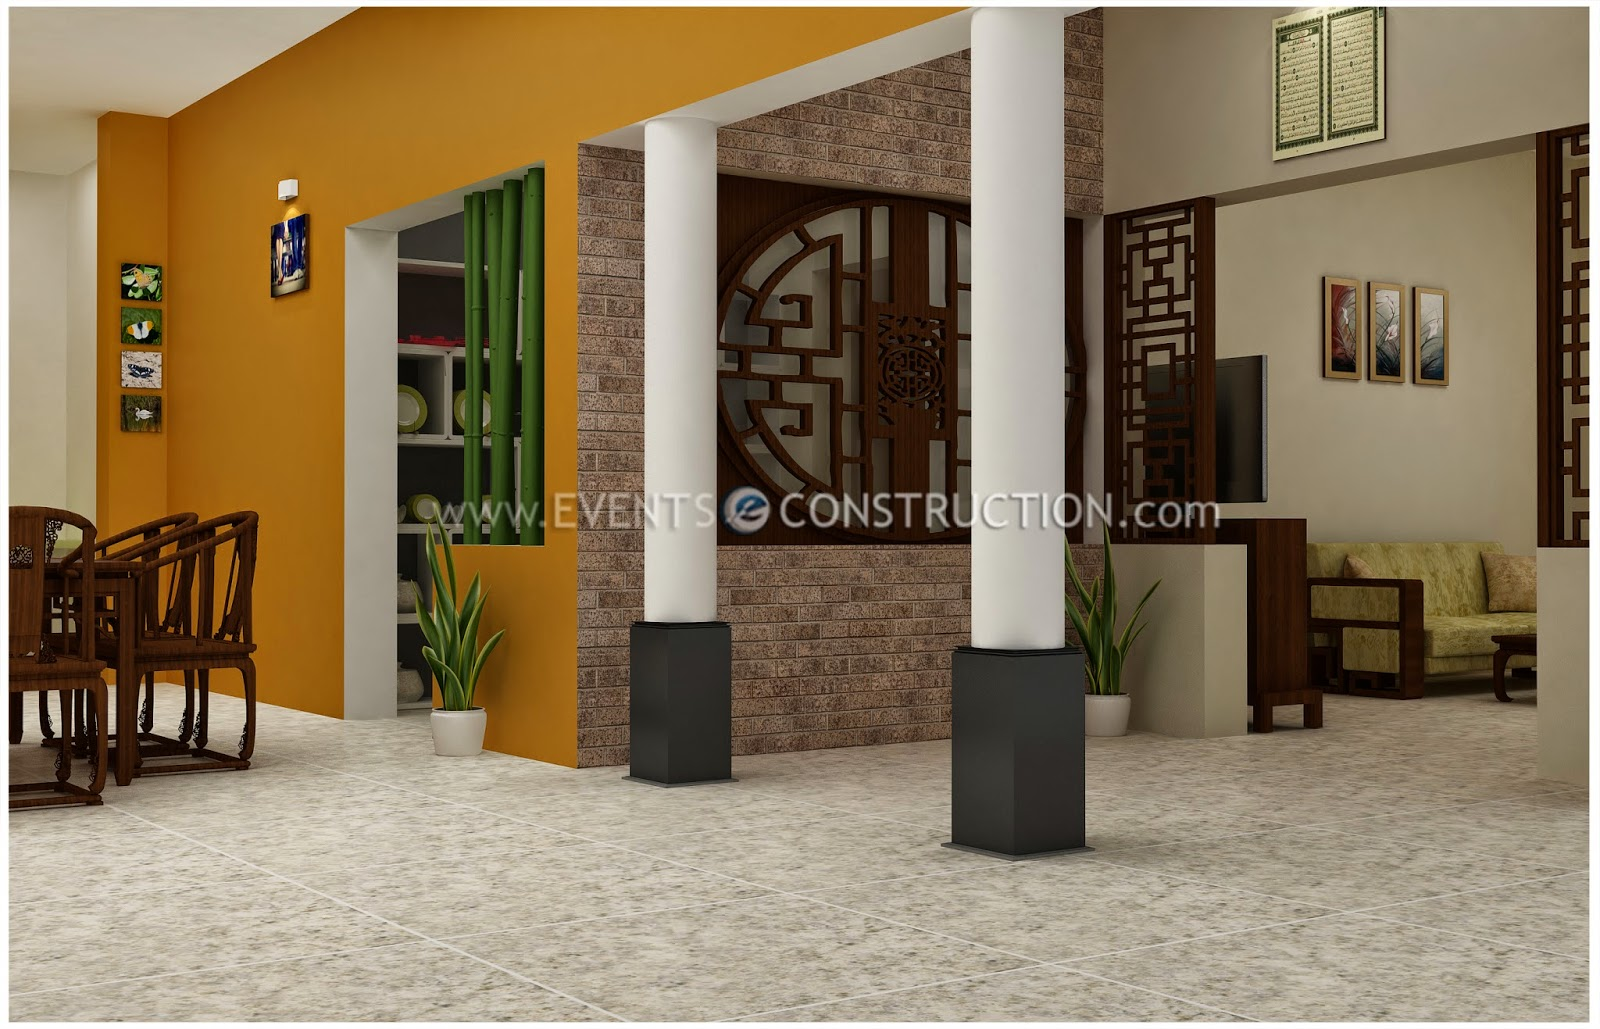 Evens construction pvt ltd partition wall desiogn for Partition designs between kitchen and living room